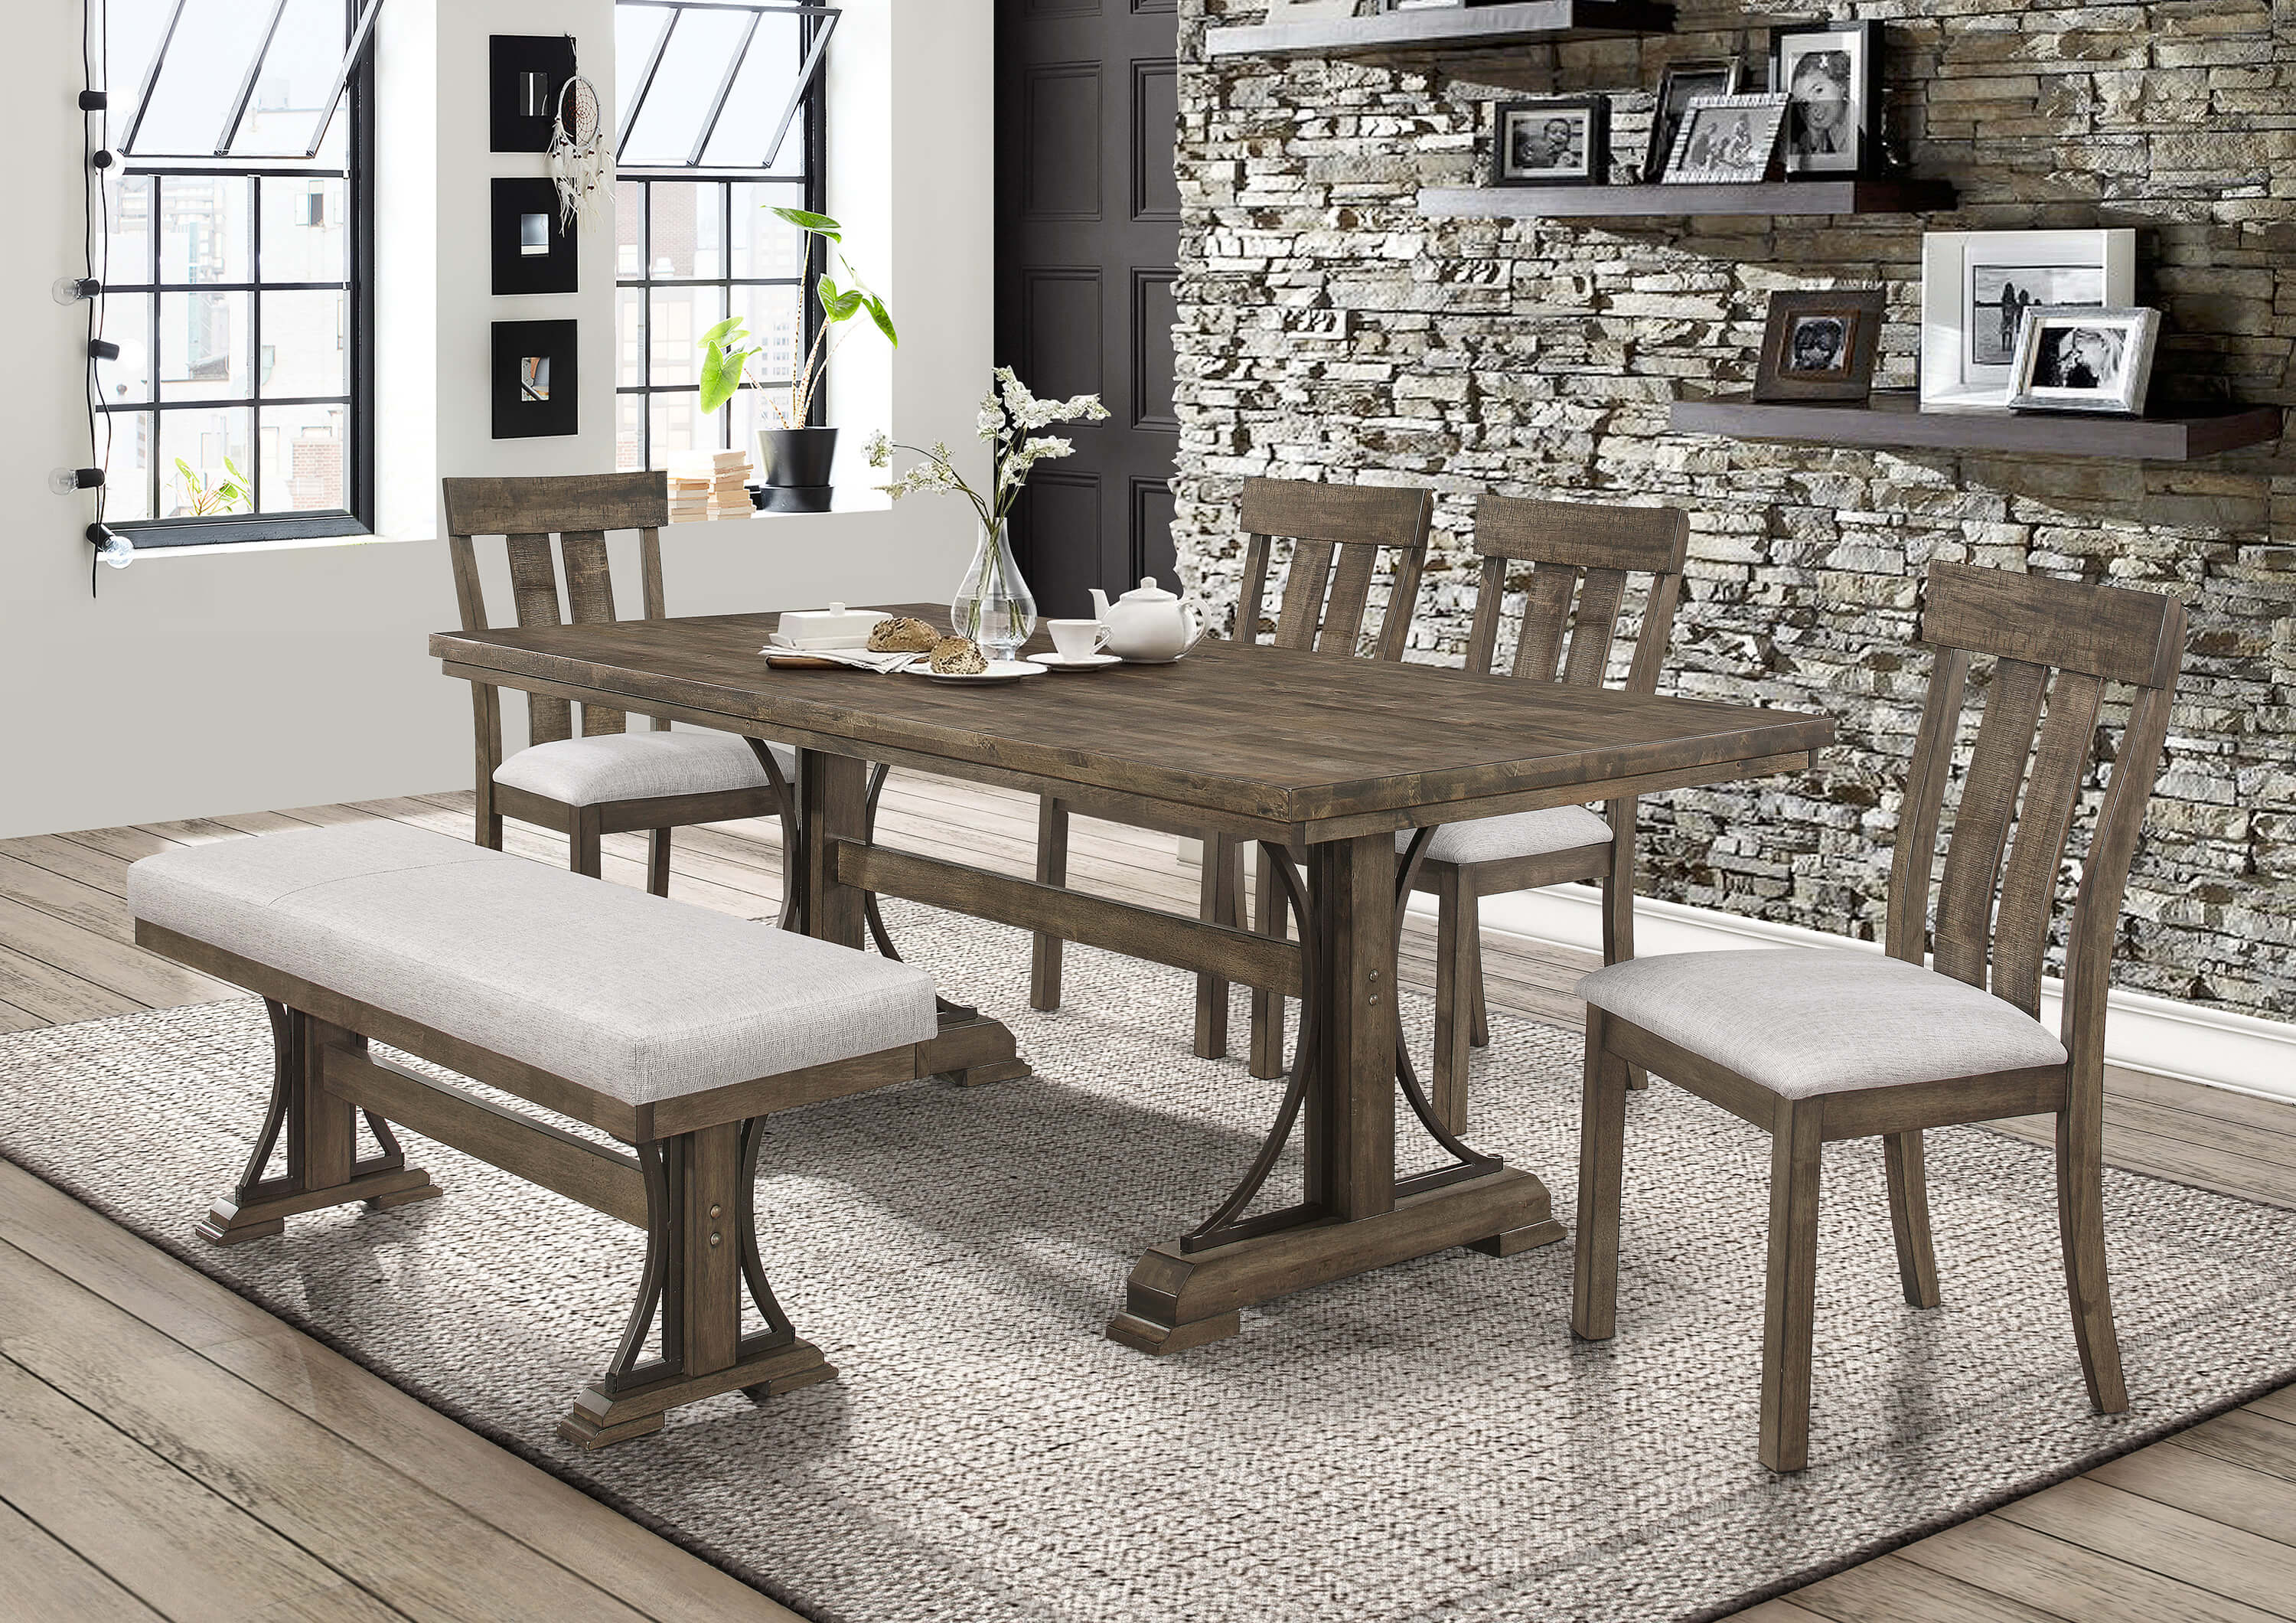 Quincy Dining Set With Bench